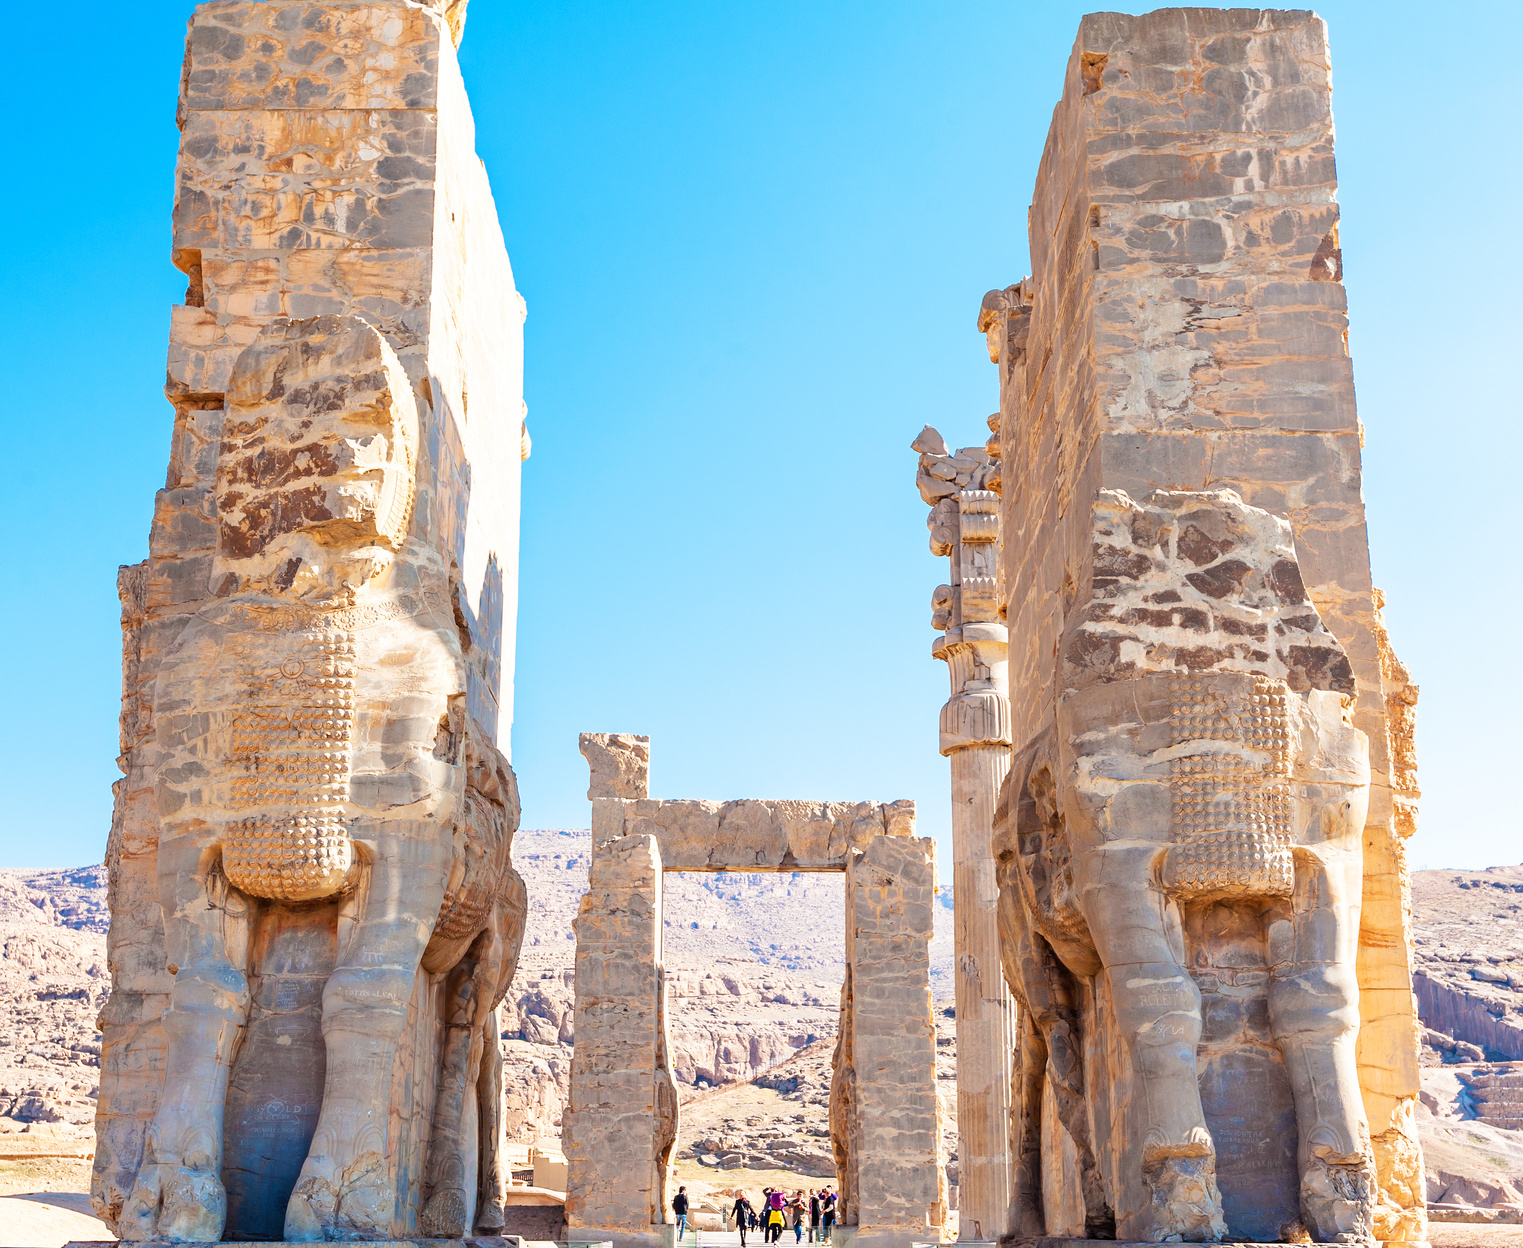 Entrance to Persepolis, Iran